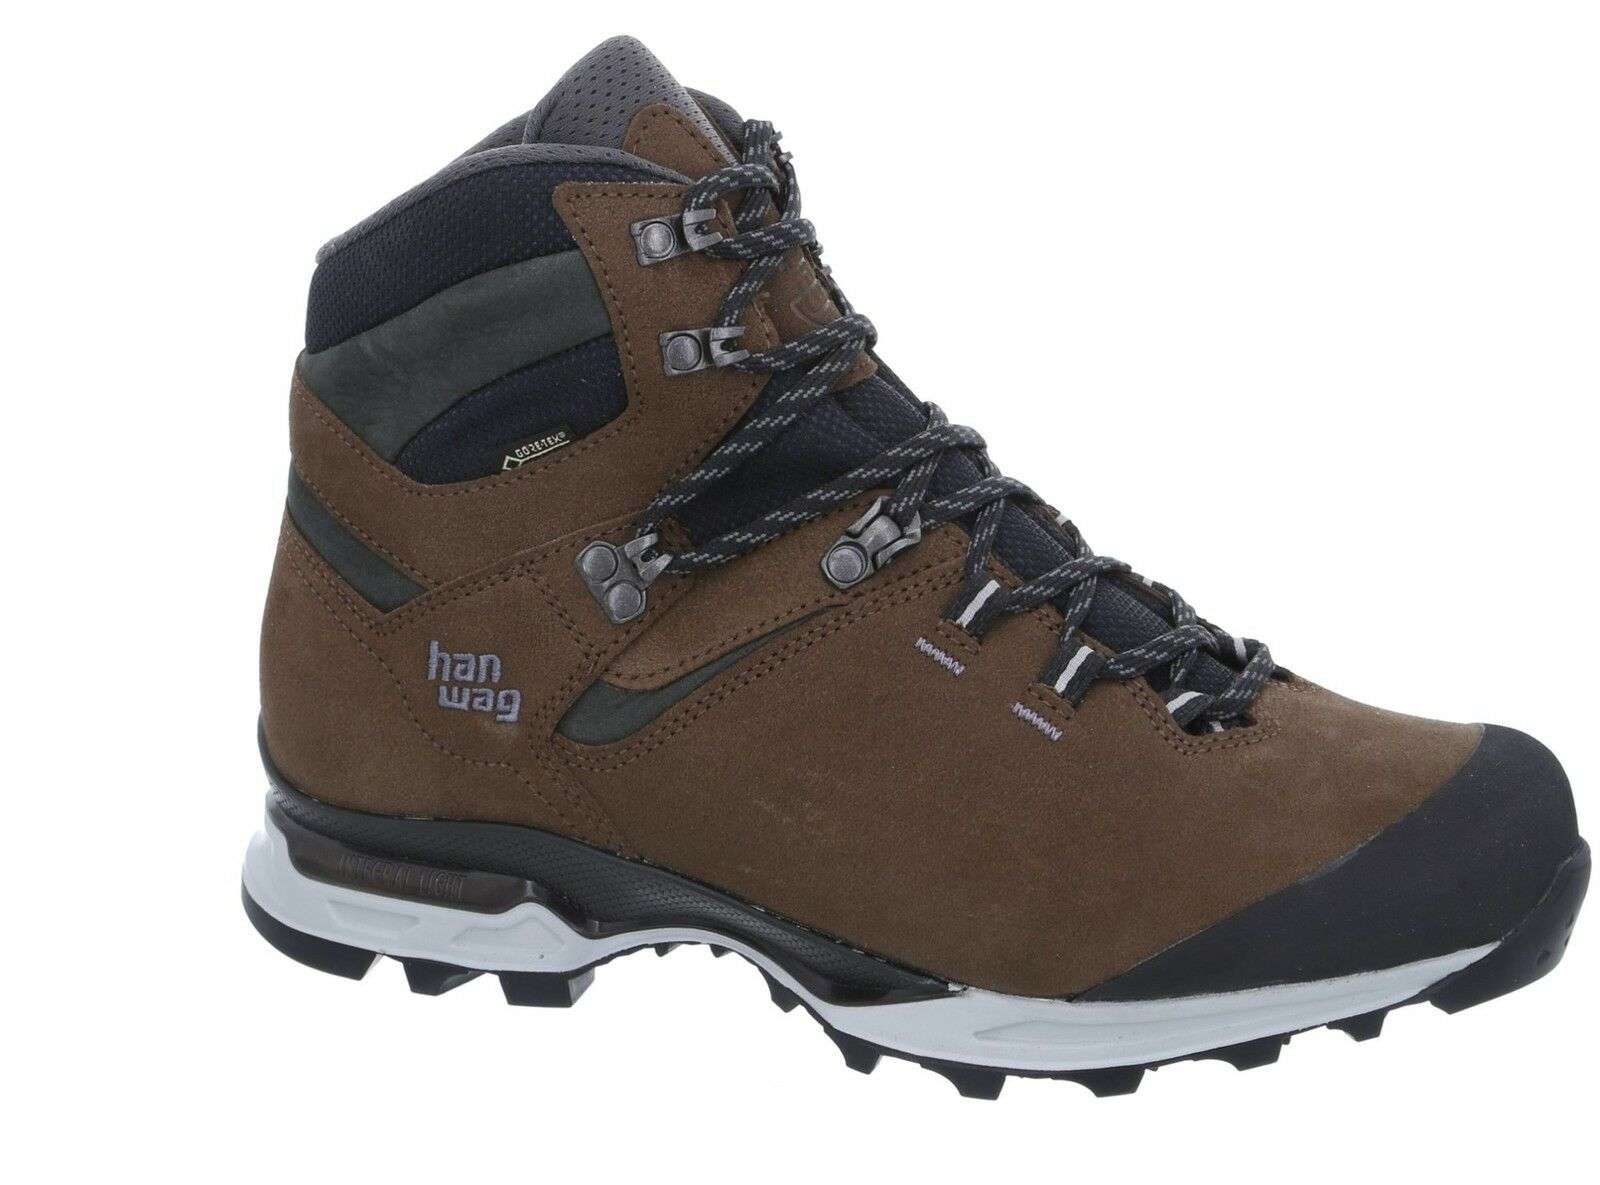 Hanwag Montagna Scarpe Tatra LIGHT GTX dimensione 11 - 46 Brown/ANTHRACITE